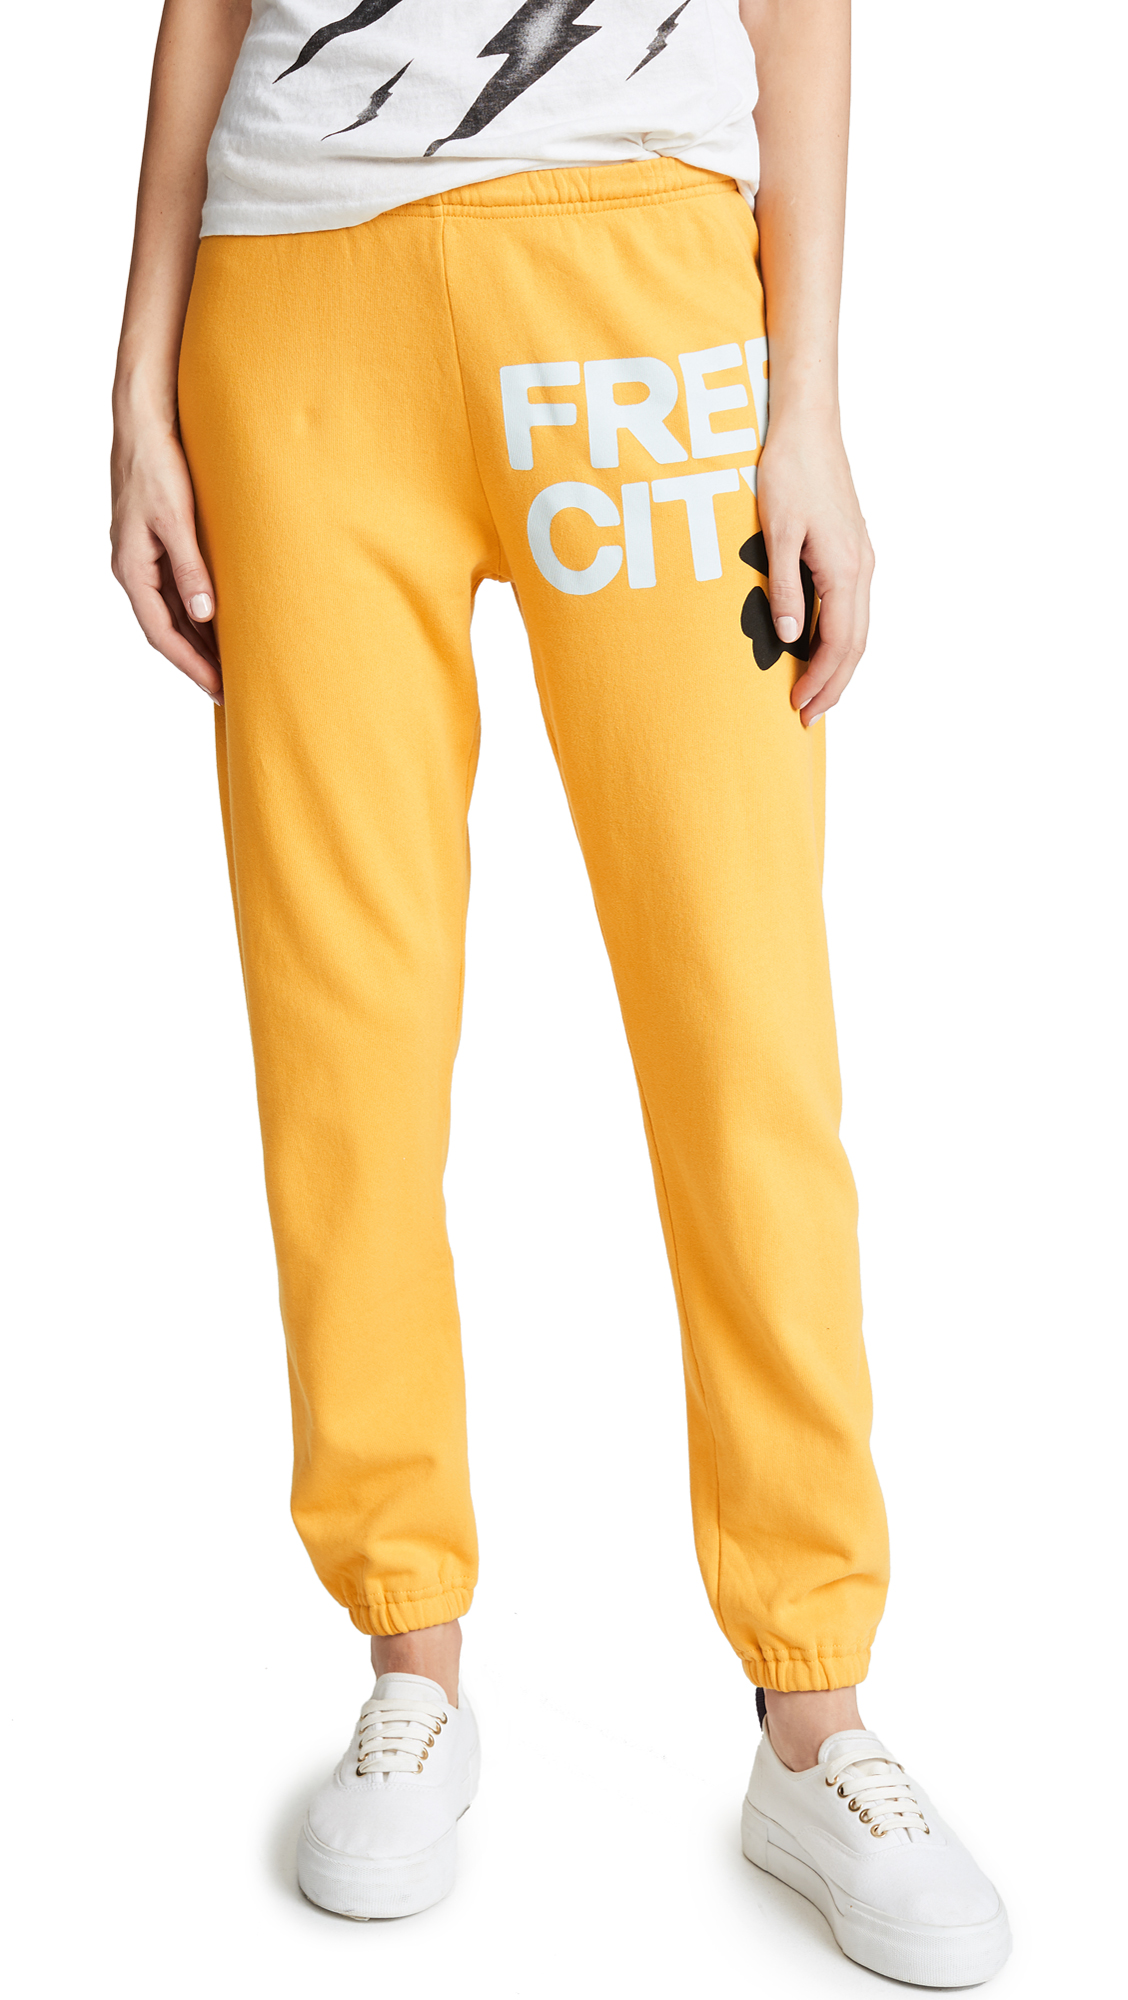 Freecity Sweatpants In Yellow Machine  dcc08c75b086